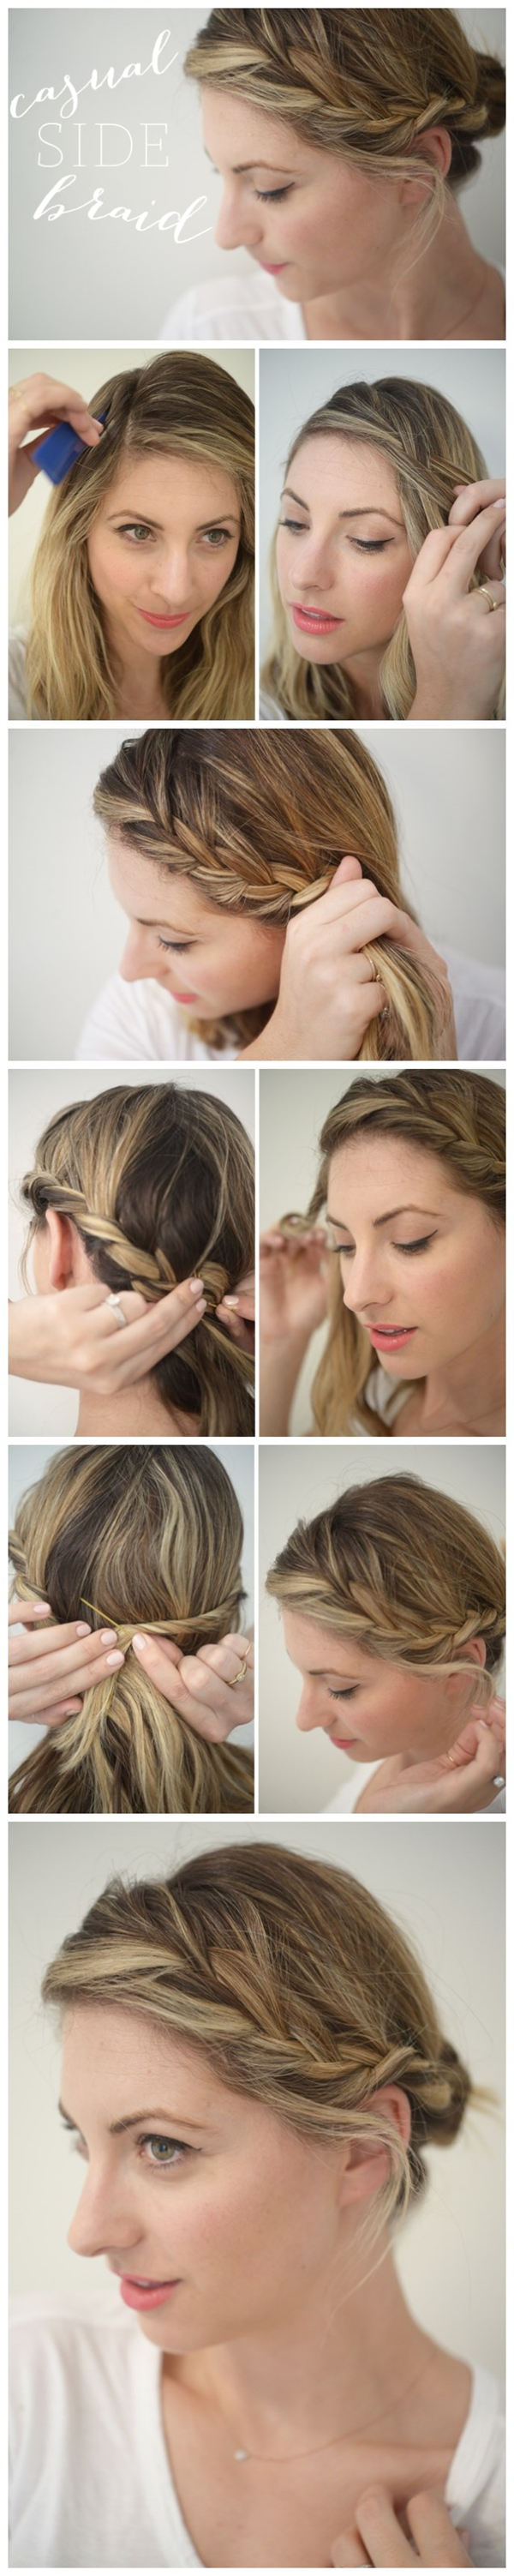 Casual Side Braid Tutorial